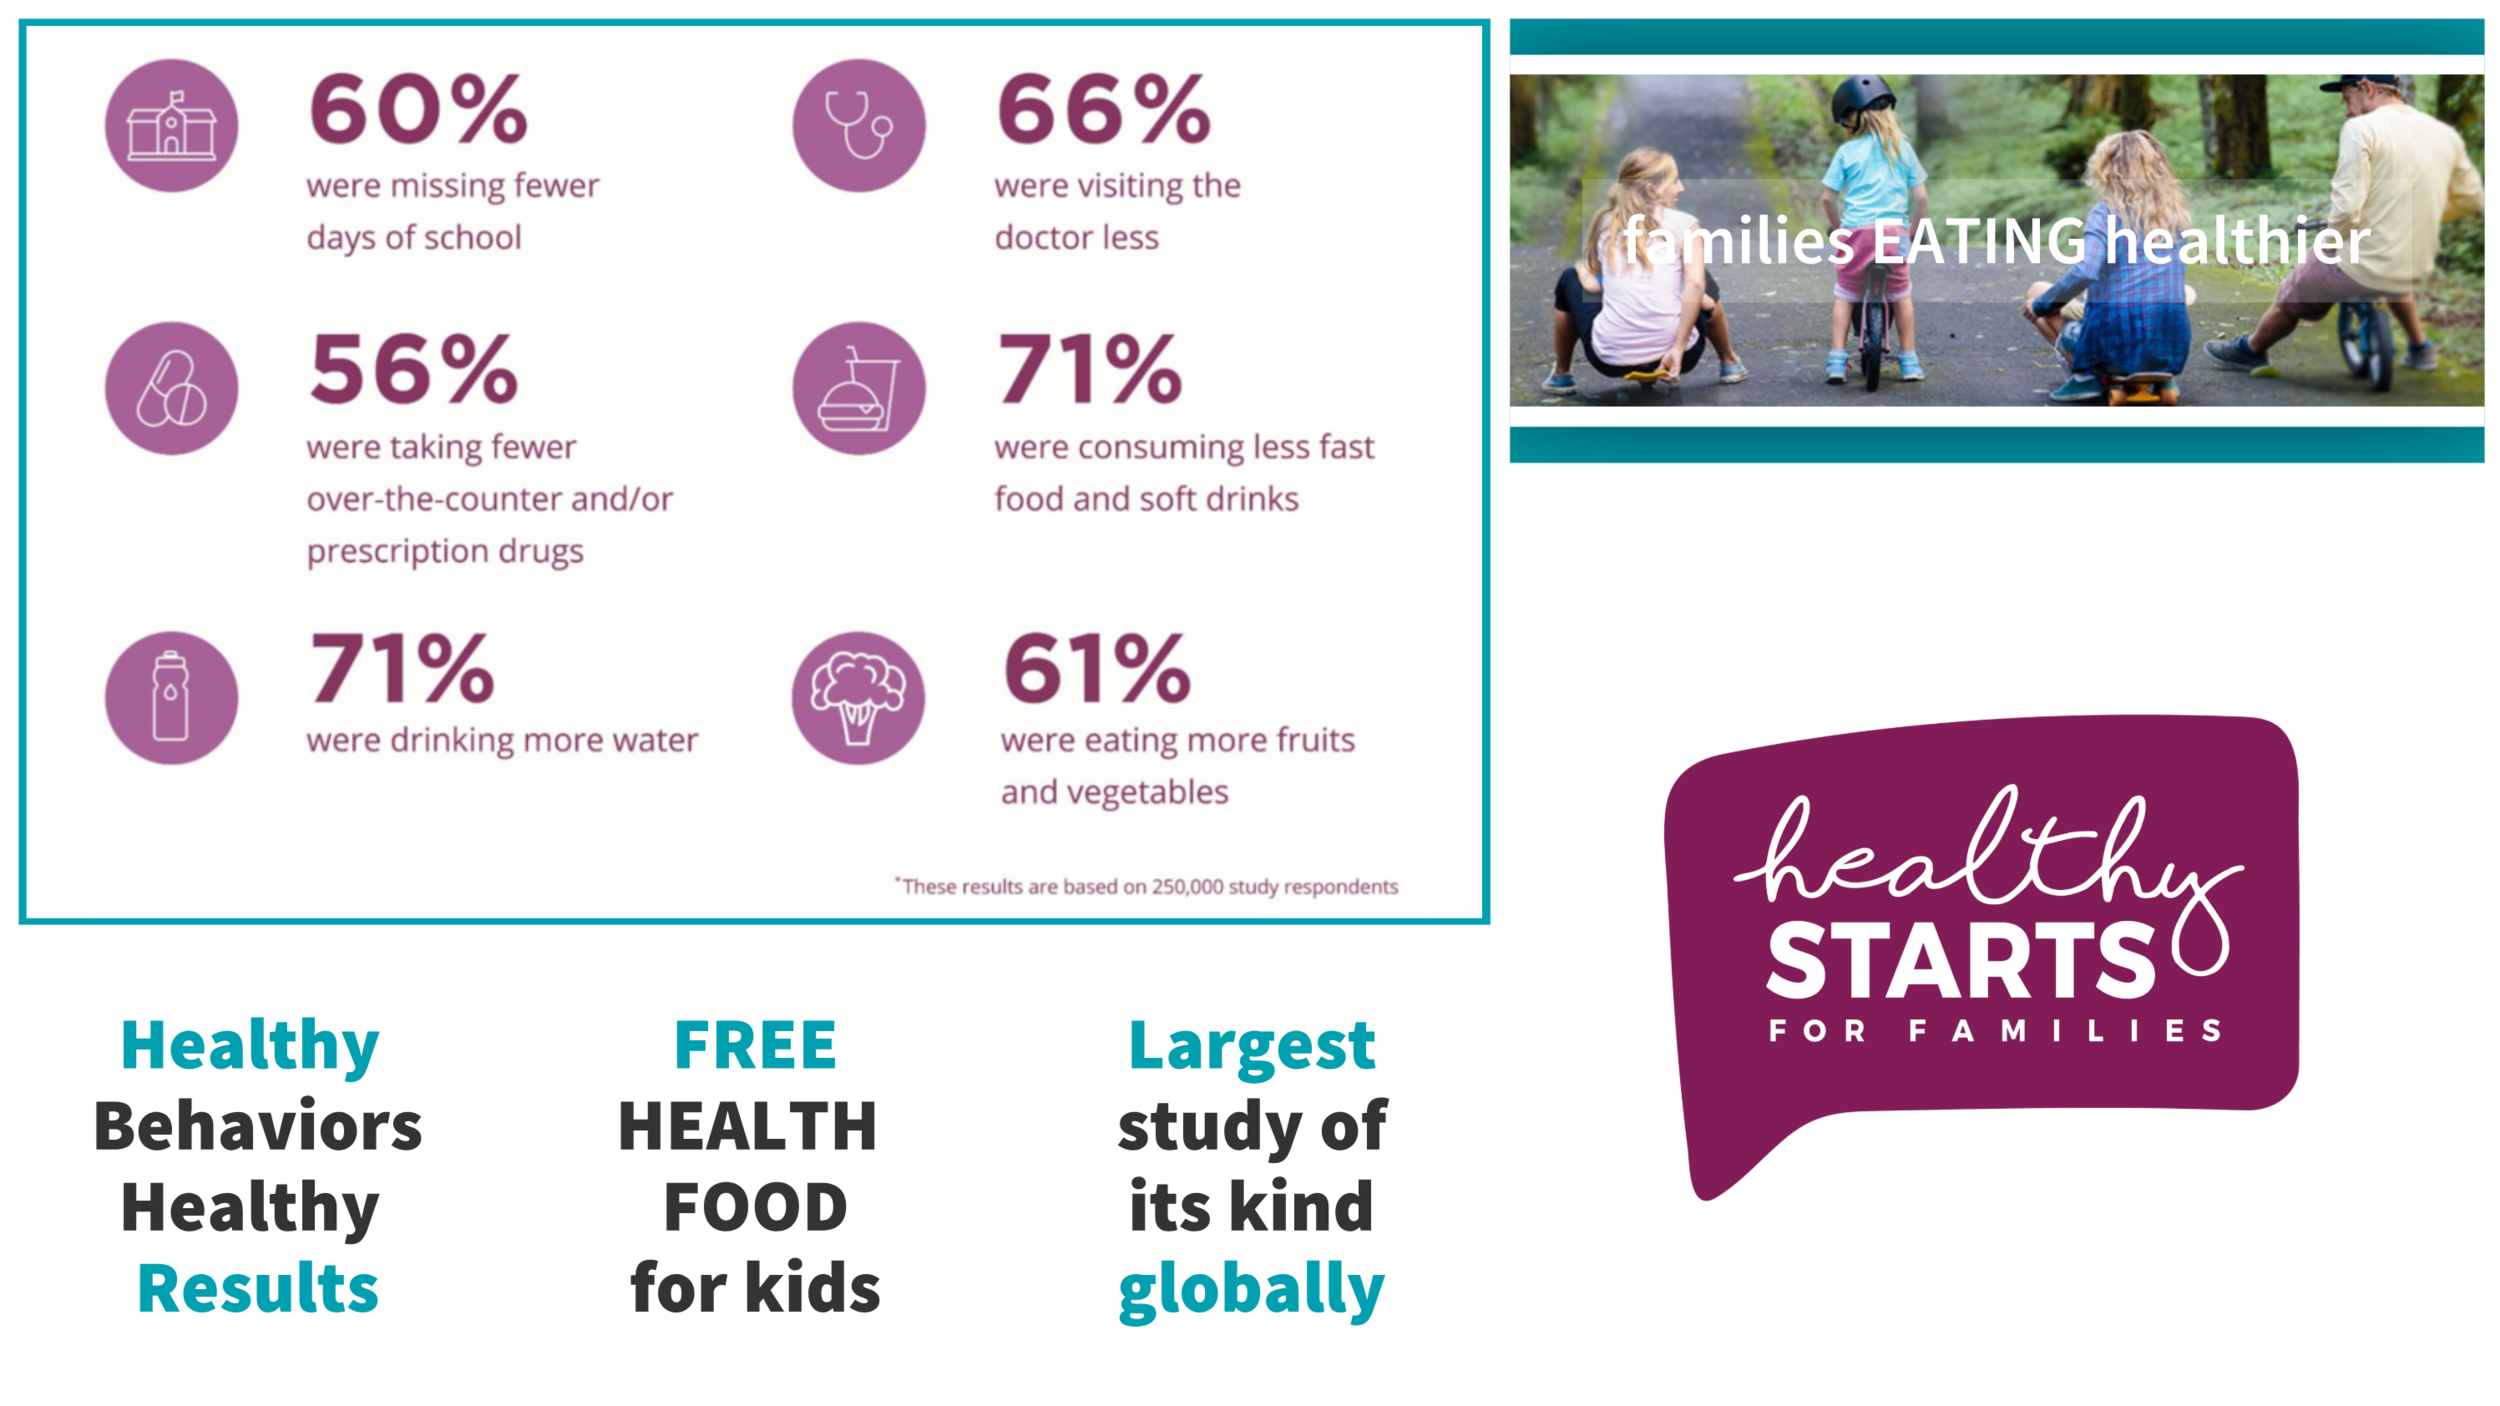 healthy starts results flyer.PNG